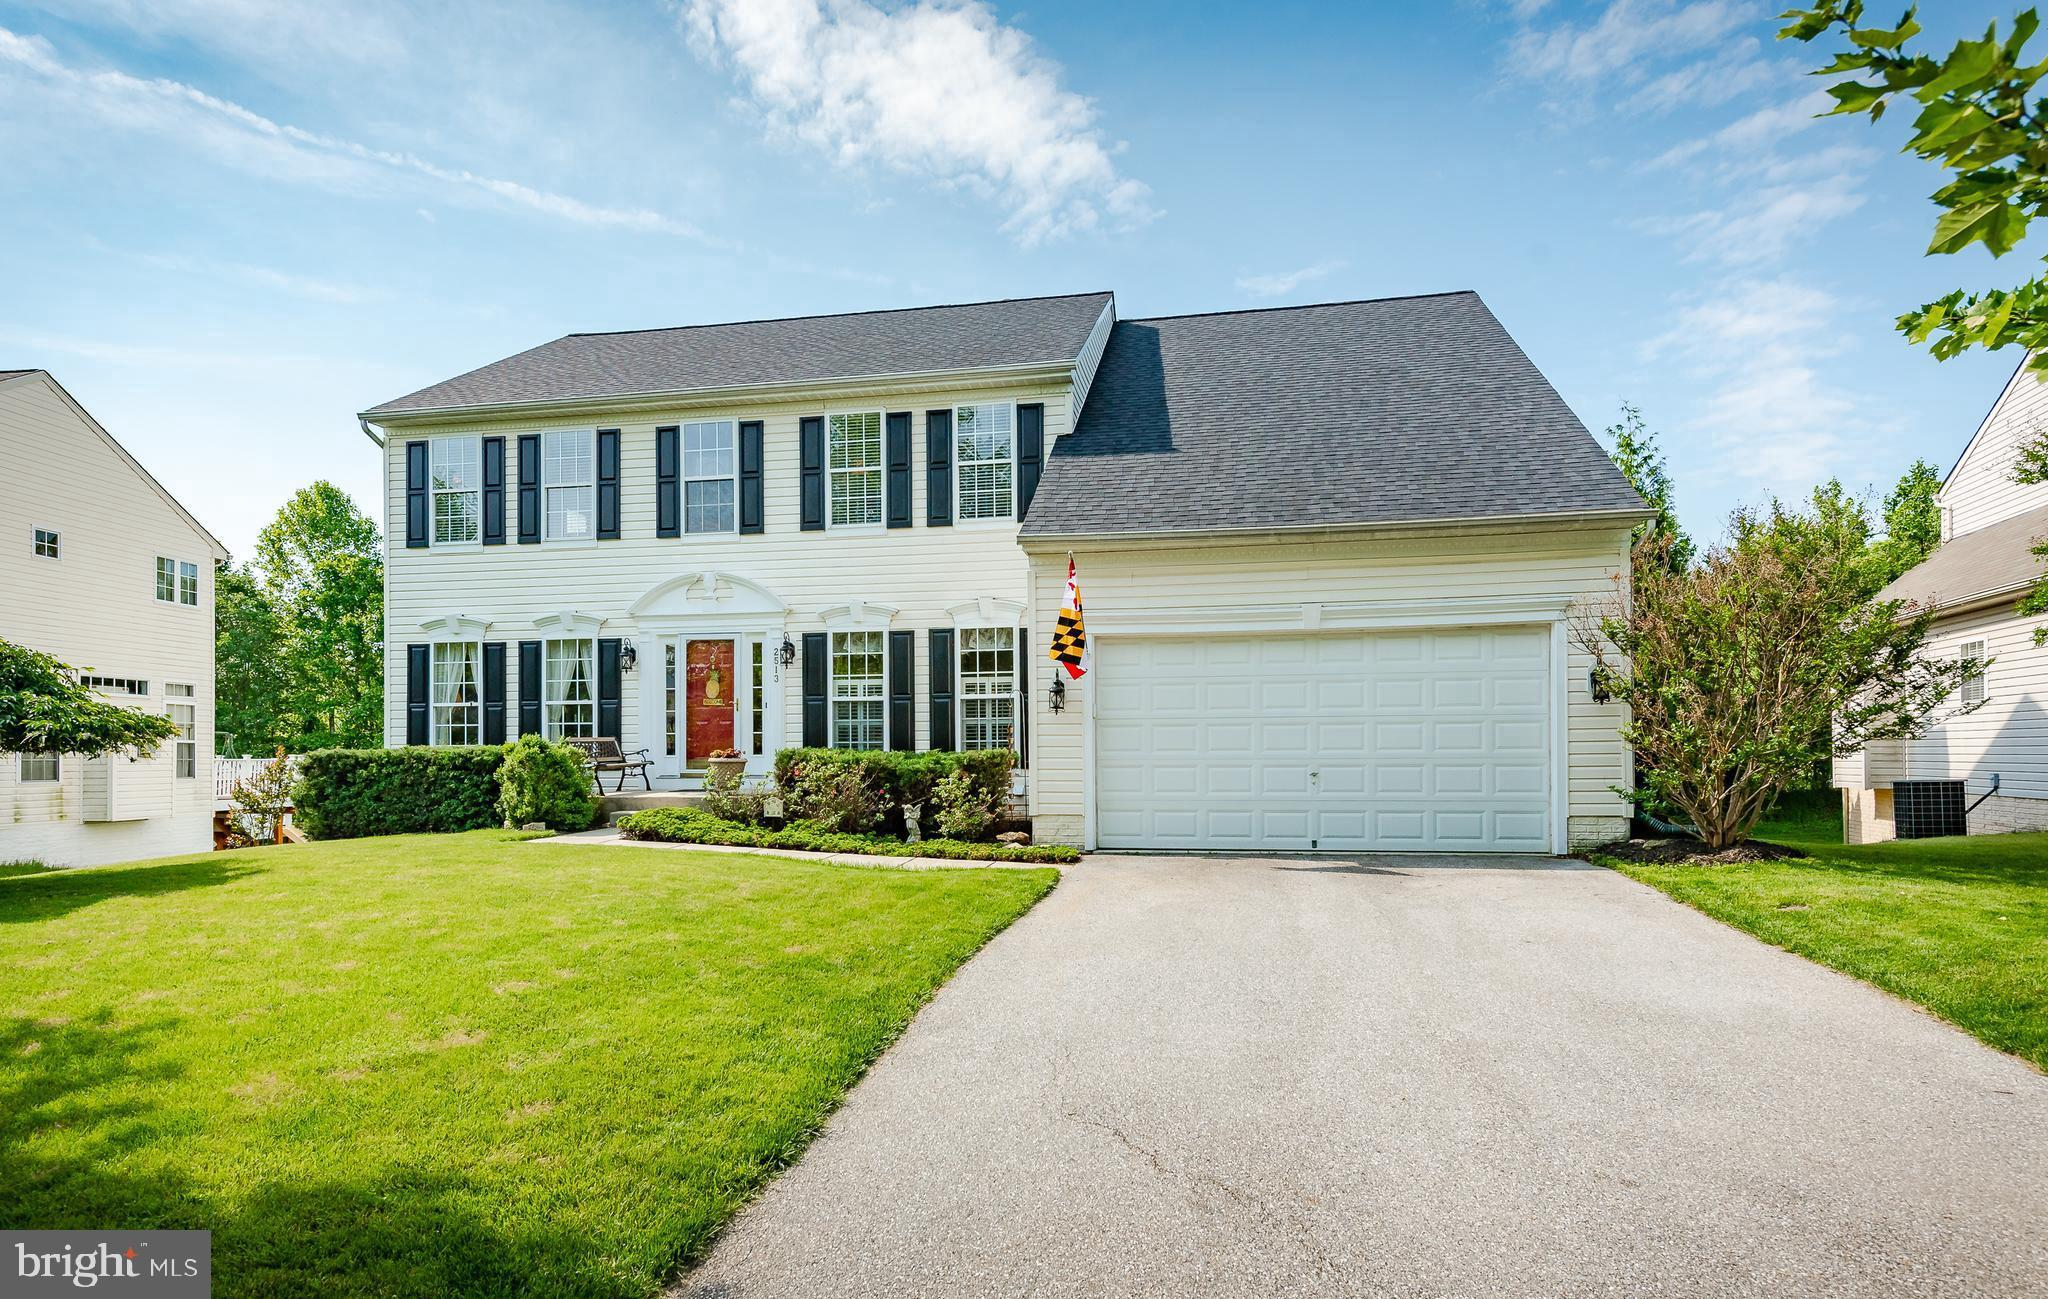 2513 HOLLY SPRINGS COURT, ELLICOTT CITY, MD 21043